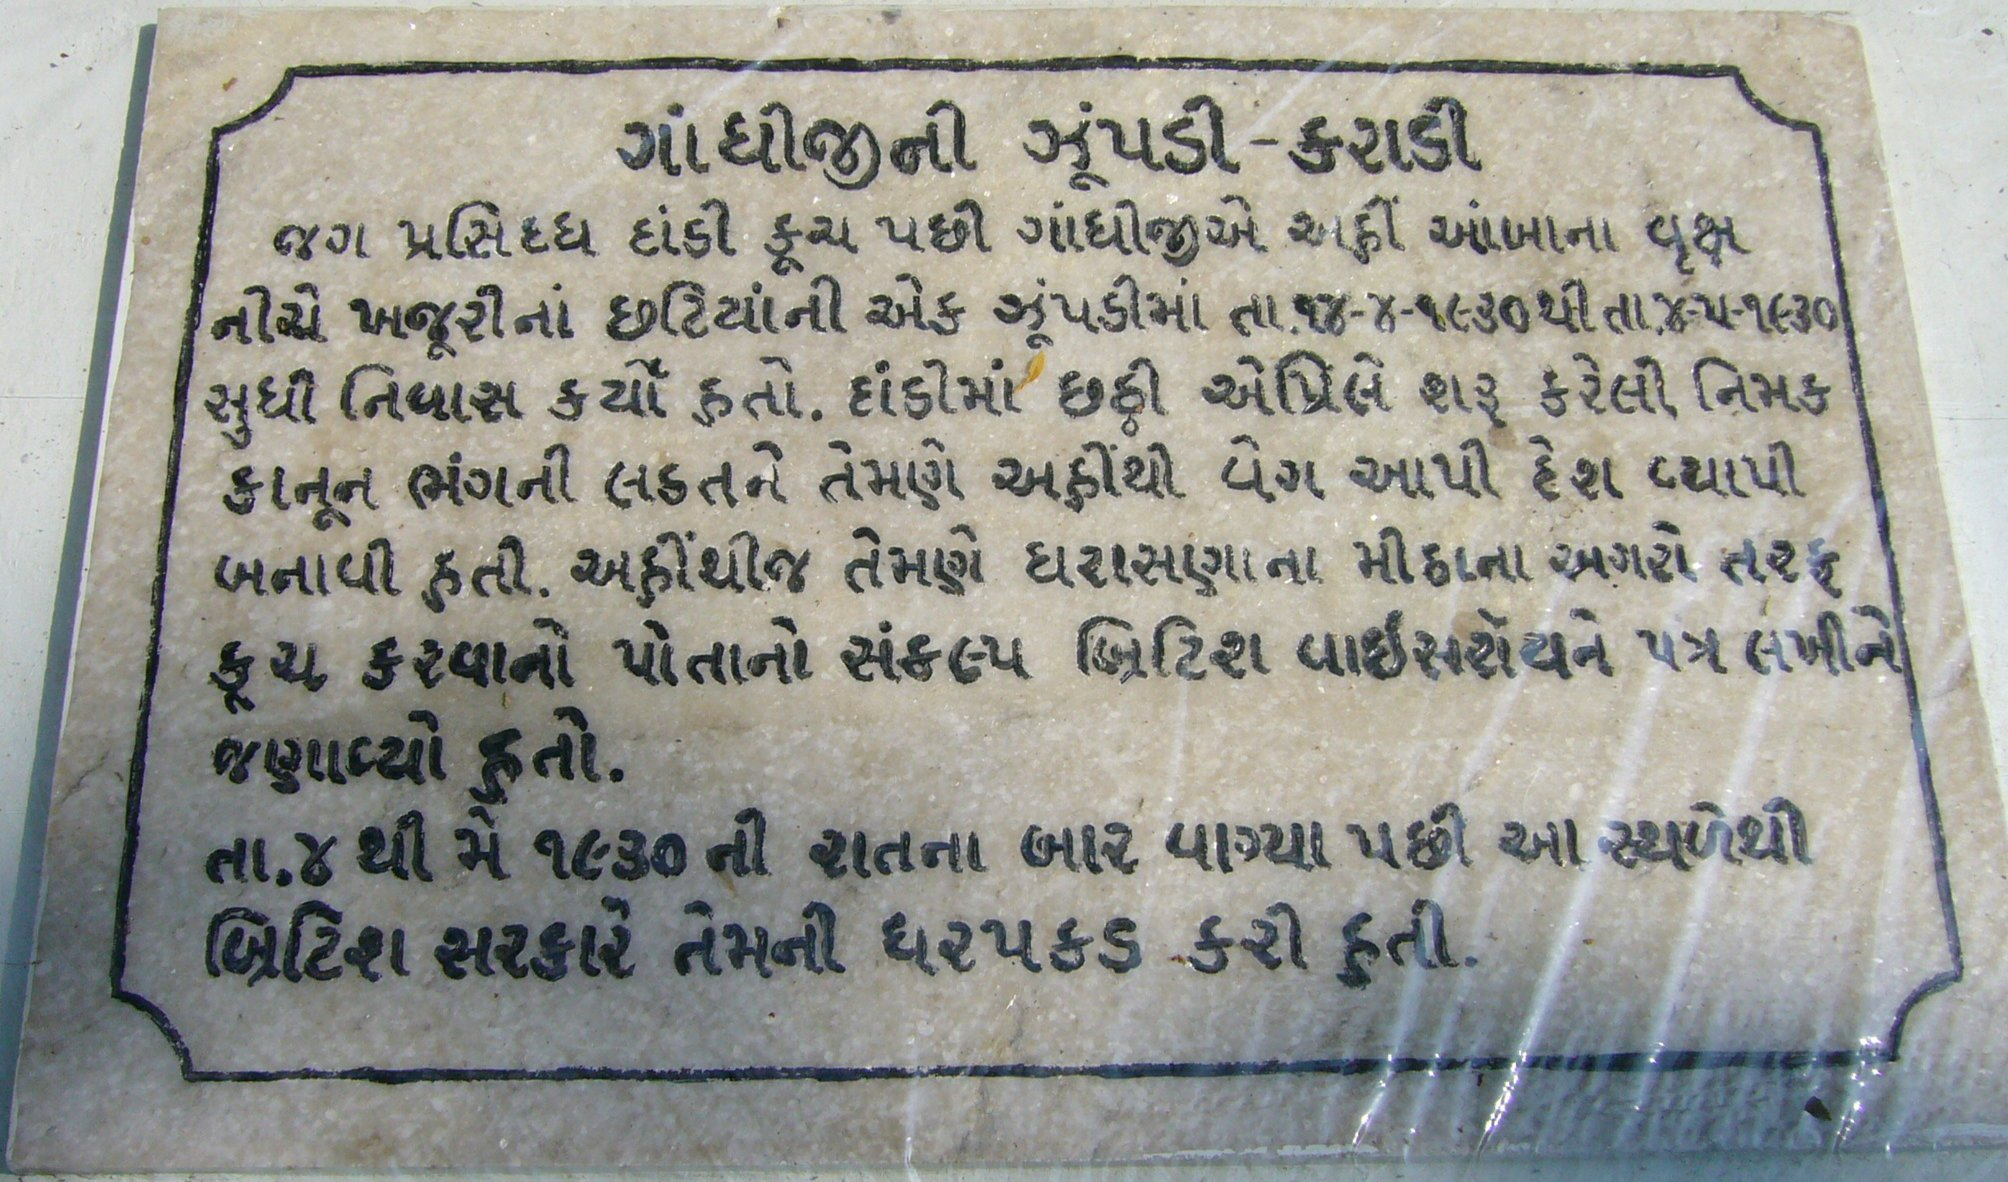 essay on gandhiji in gujarati language Individual support organisational support for the achievement of children in their language gujarati gandhiji essay in reading and writing floyd, s.